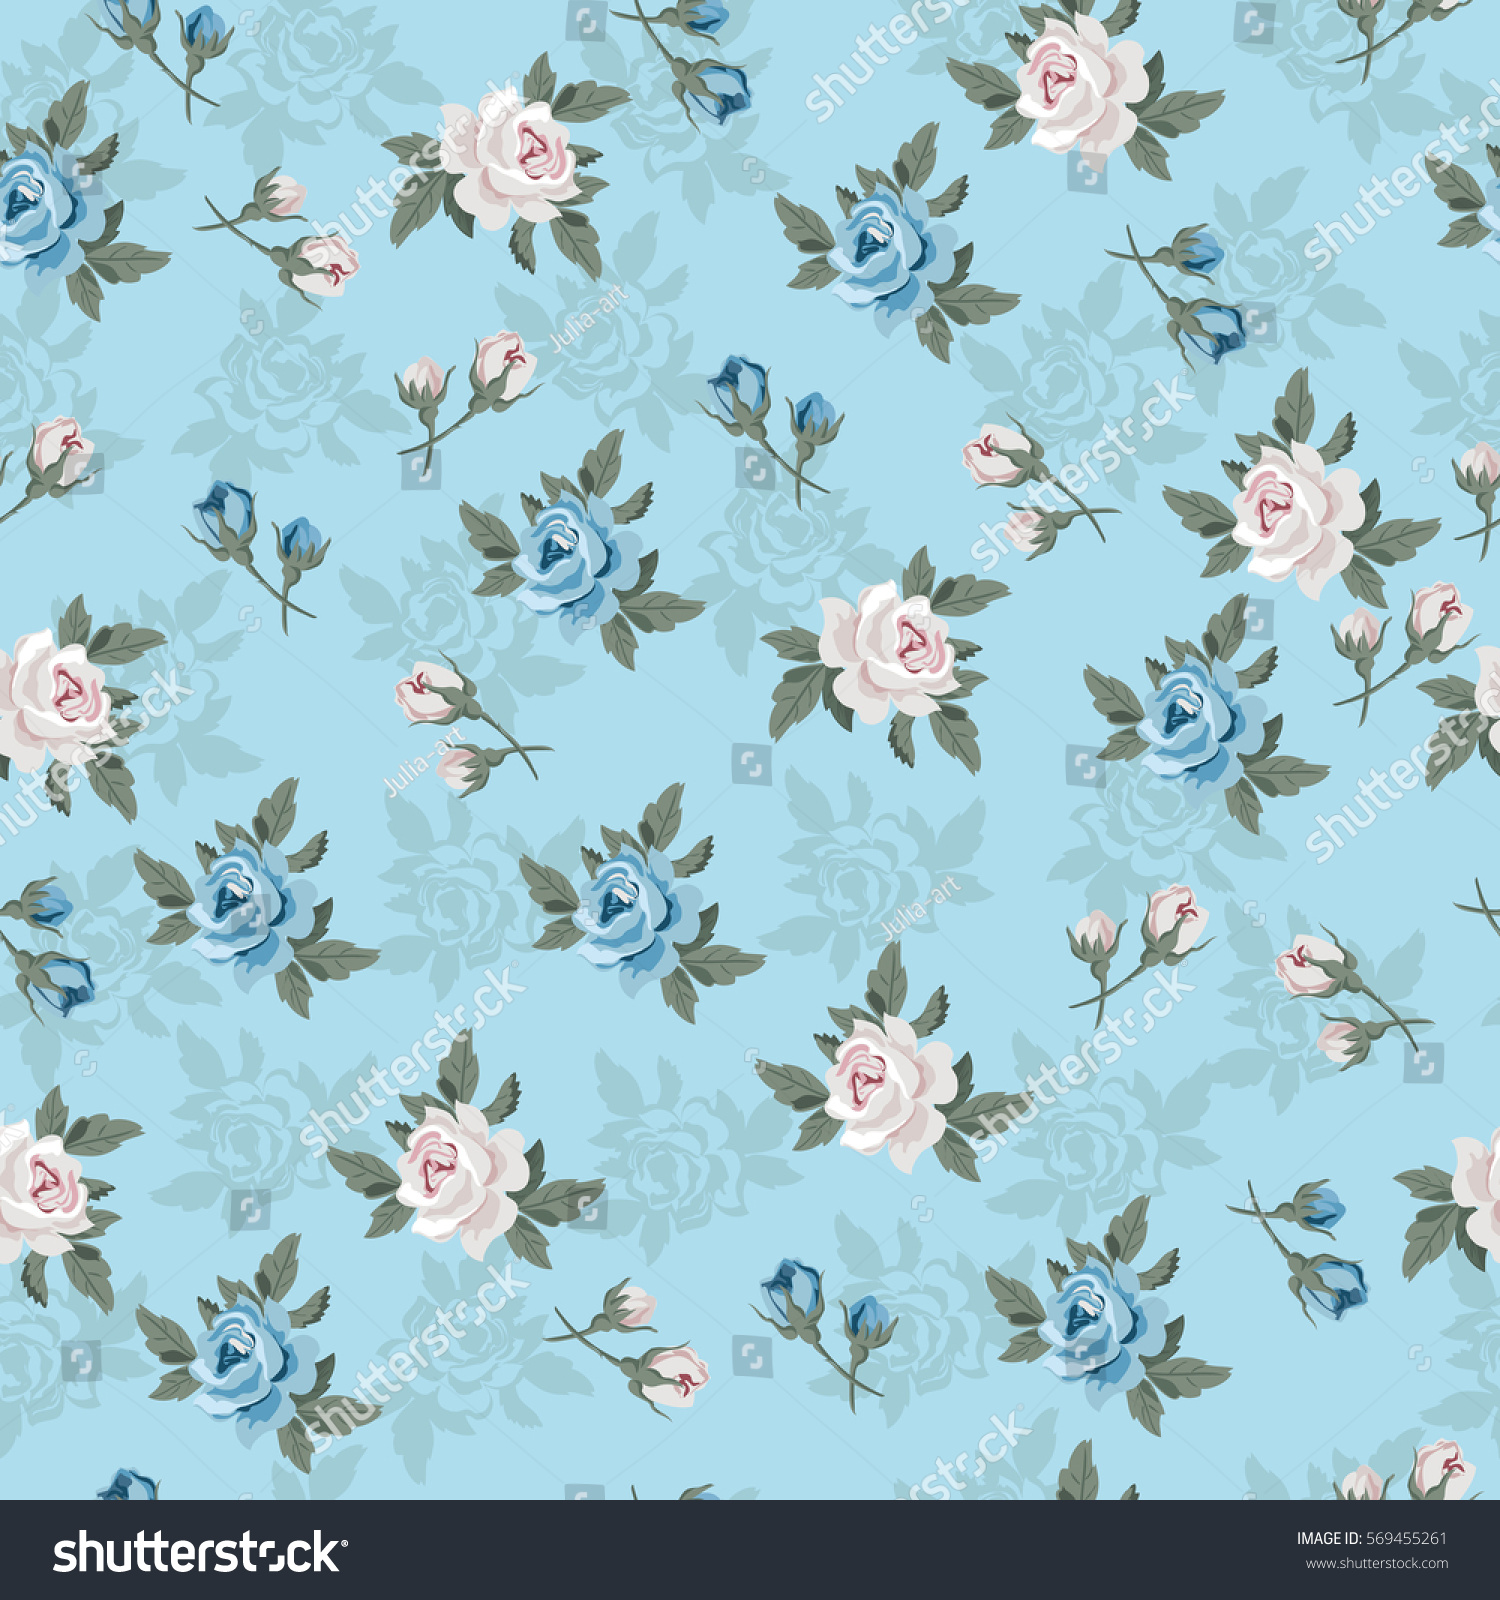 Seamless vintage flower pattern for gift wrap and fabric design